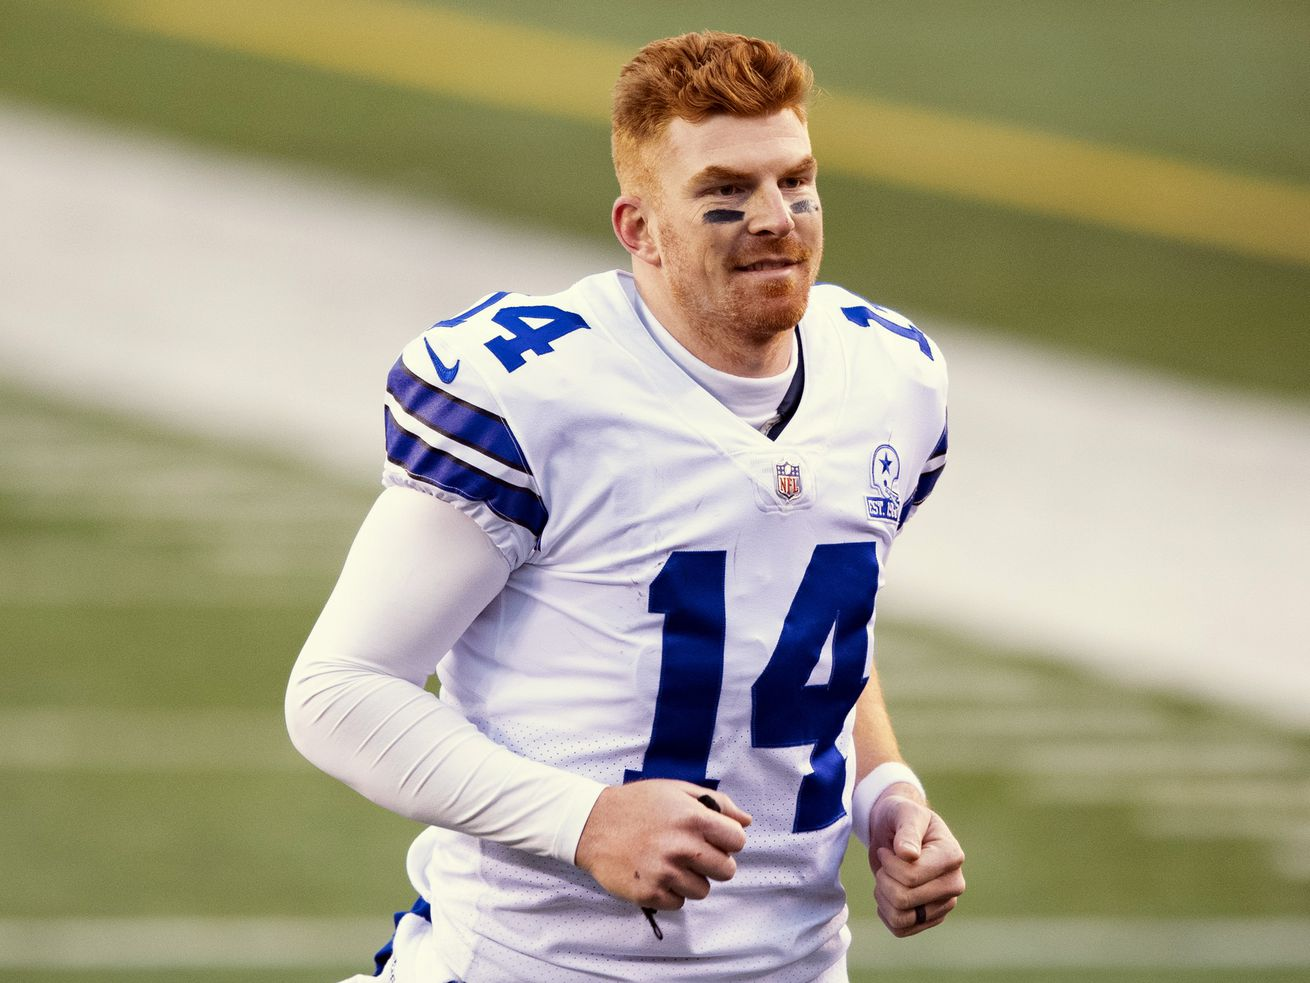 The Bears signed Andy Dalton to a one-year deal Tuesday.